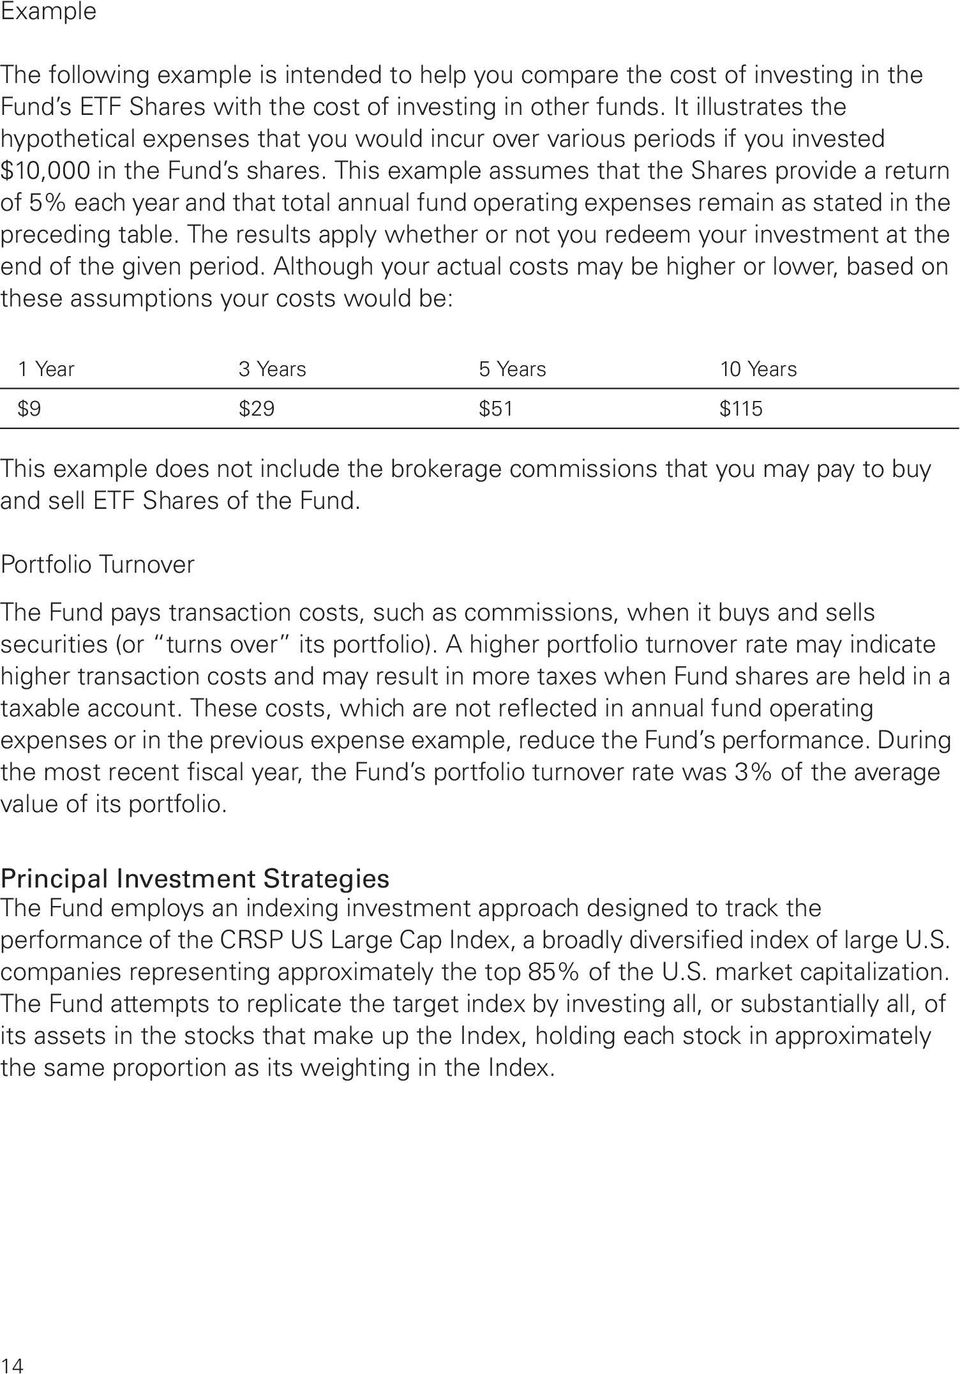 This example assumes that the Shares provide a return of 5% each year and that total annual fund operating expenses remain as stated in the preceding table.